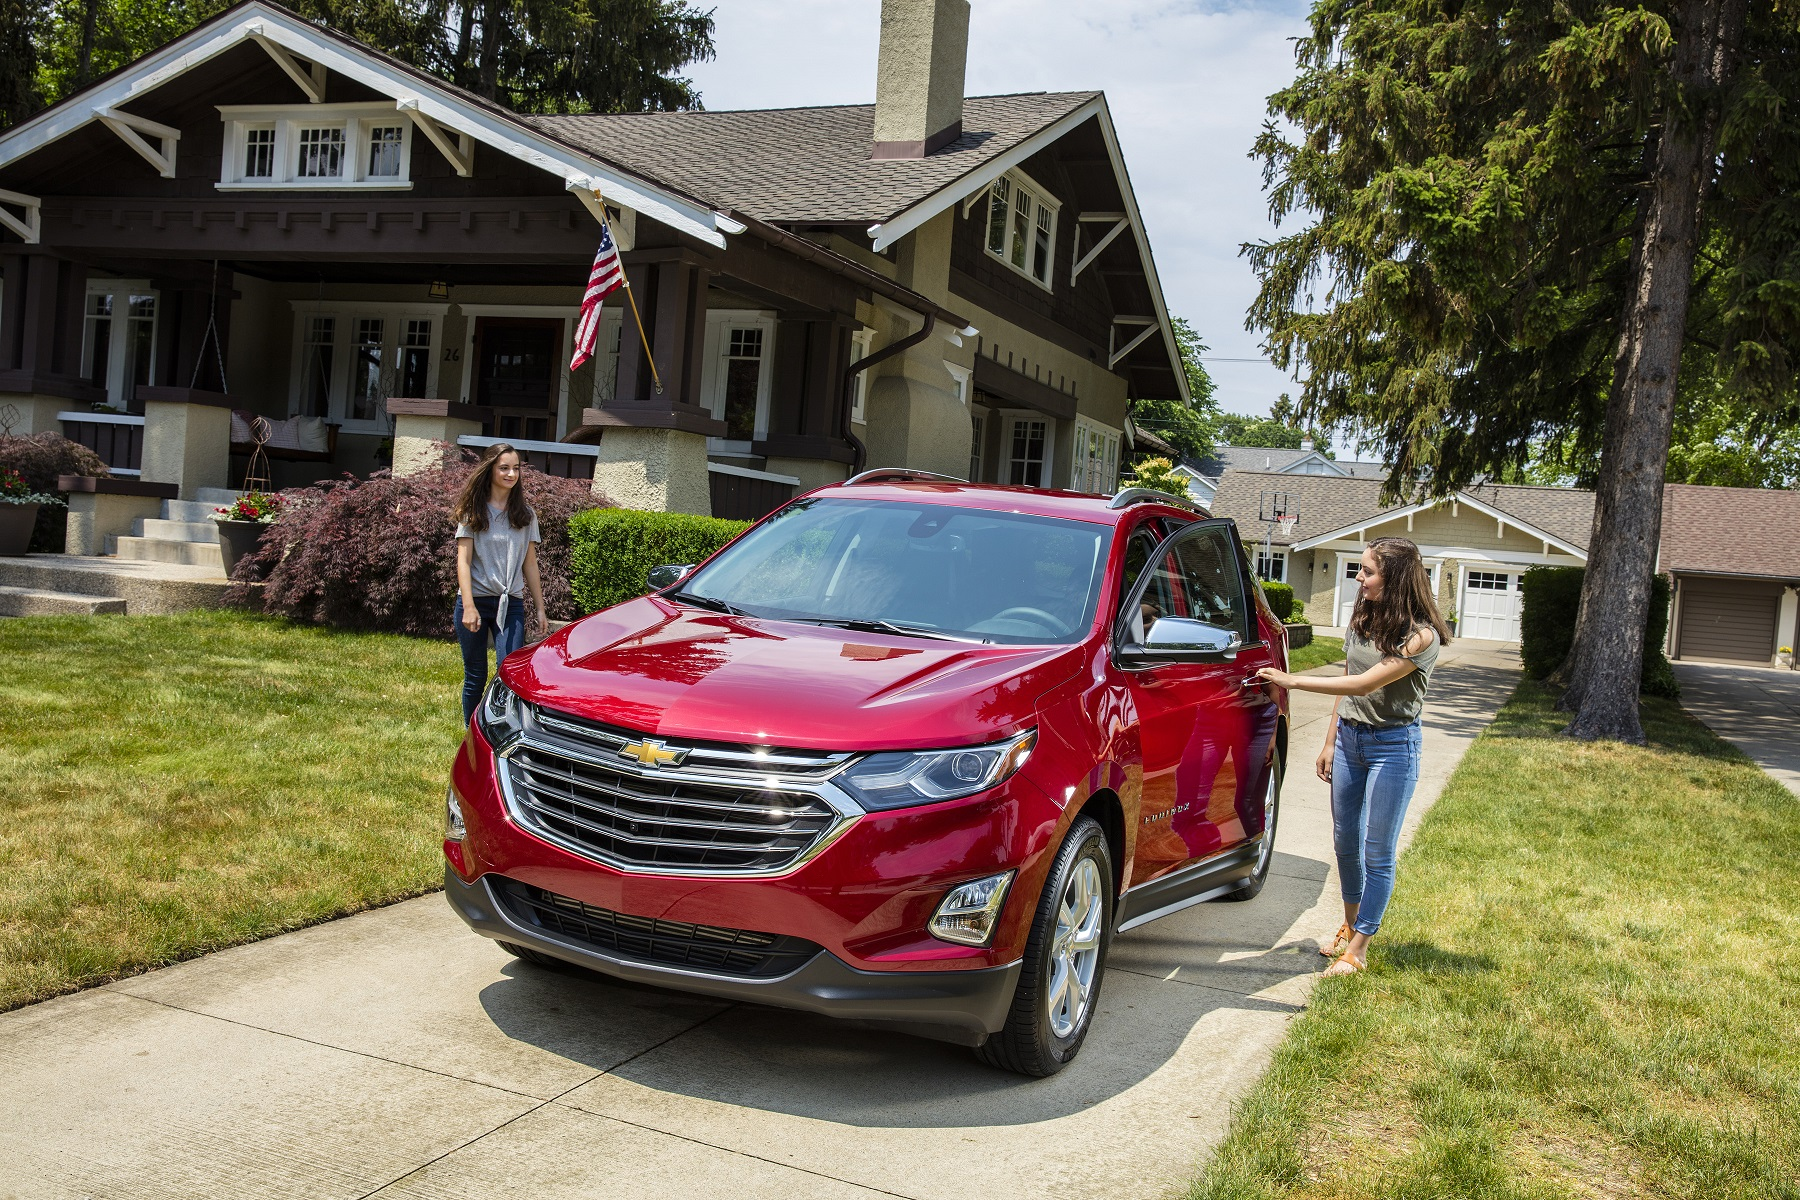 hight resolution of manufacturer photo the new 2018 equinox s expressive exterior has a lean muscular skin echoing